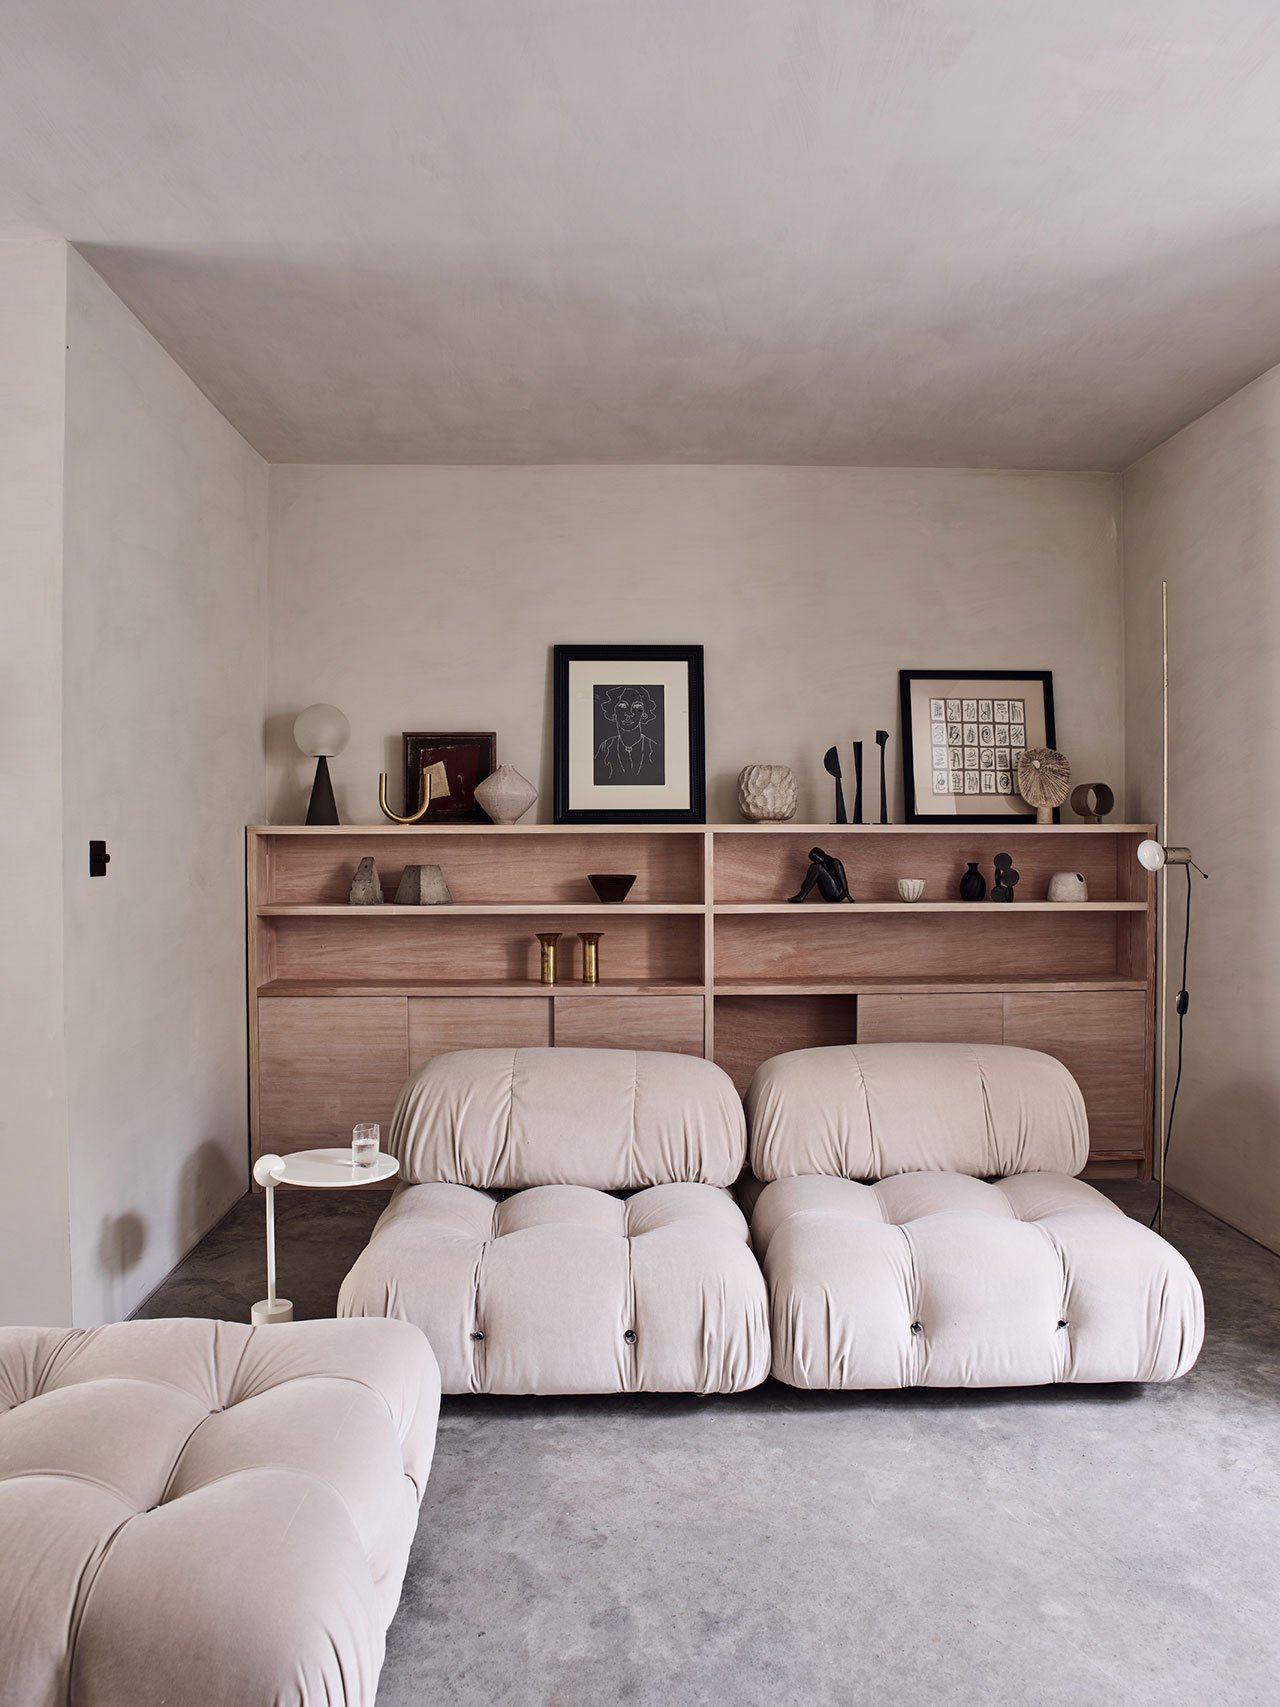 The living room is done with neutral loungers and a large shelving unit